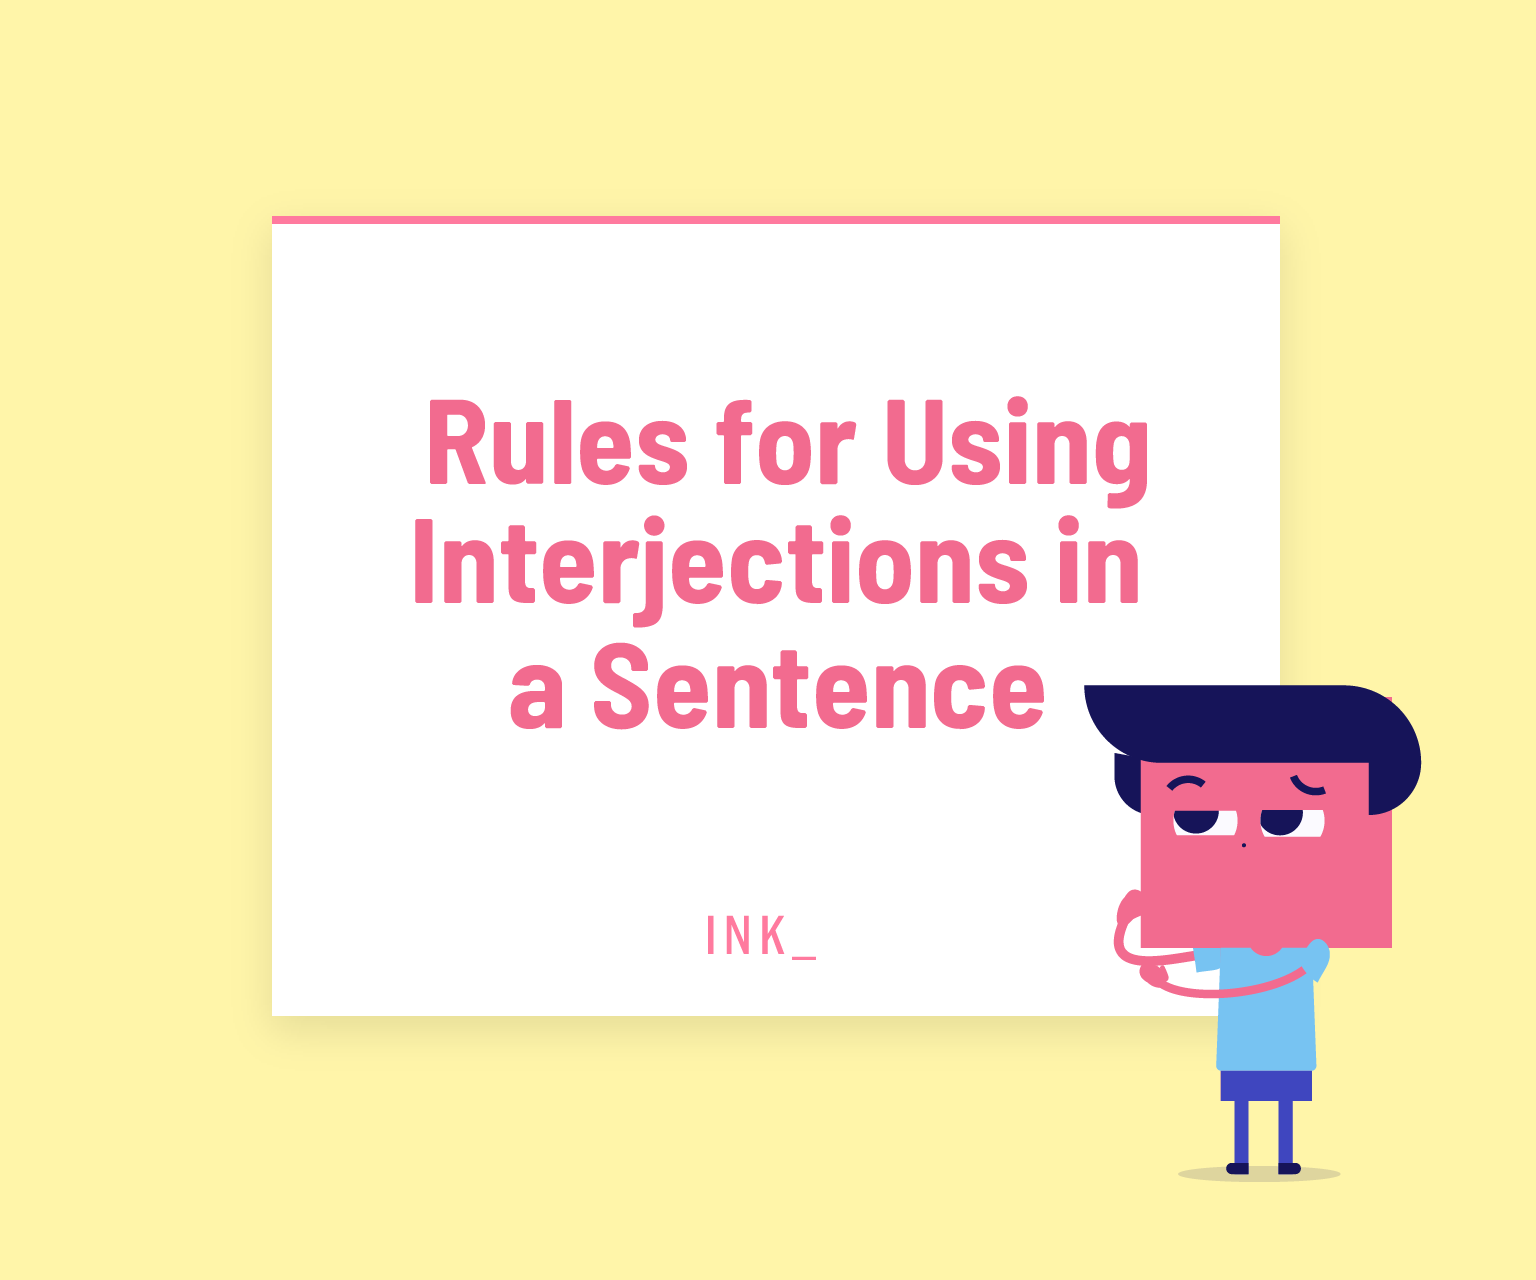 Rules for using interjections in a sentence